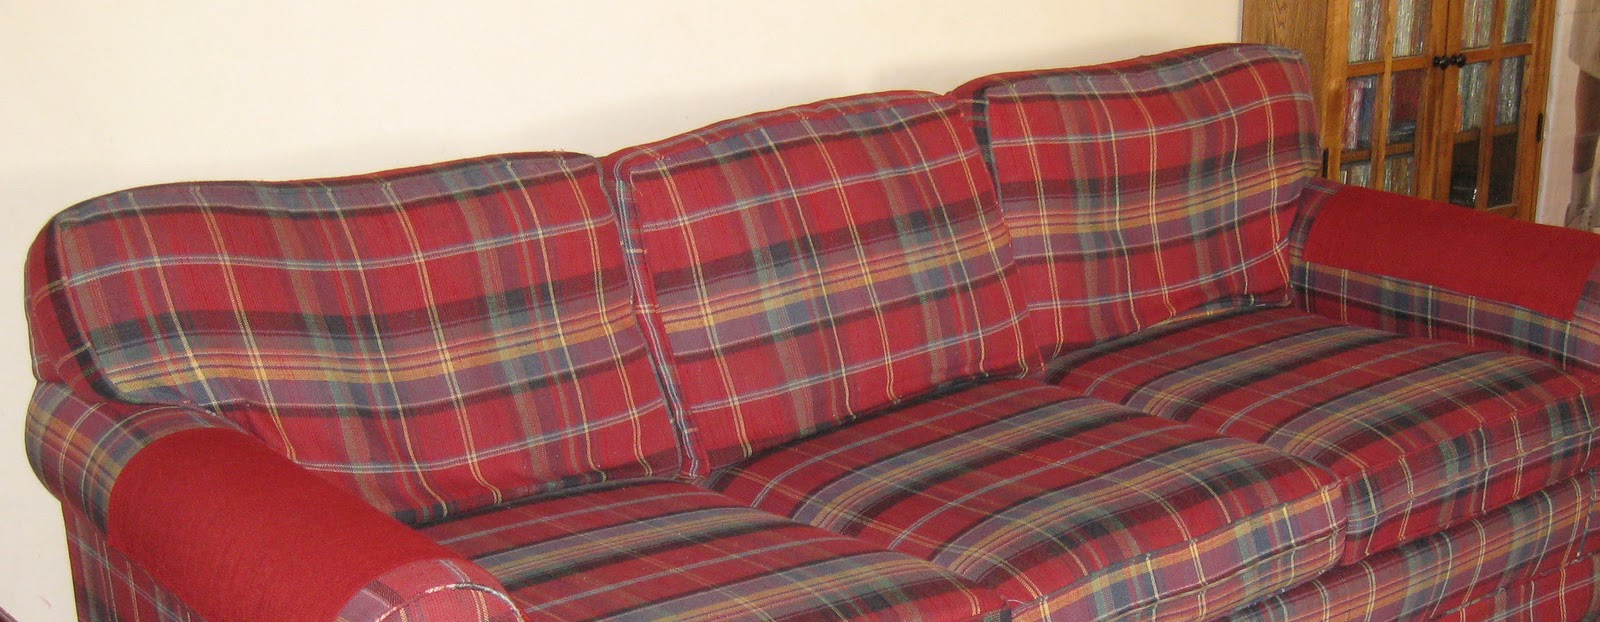 Ikea Linen Chair Covers Used Lift Chairs For Sale Custom Slipcovers By Shelley: Old Plaid Couch